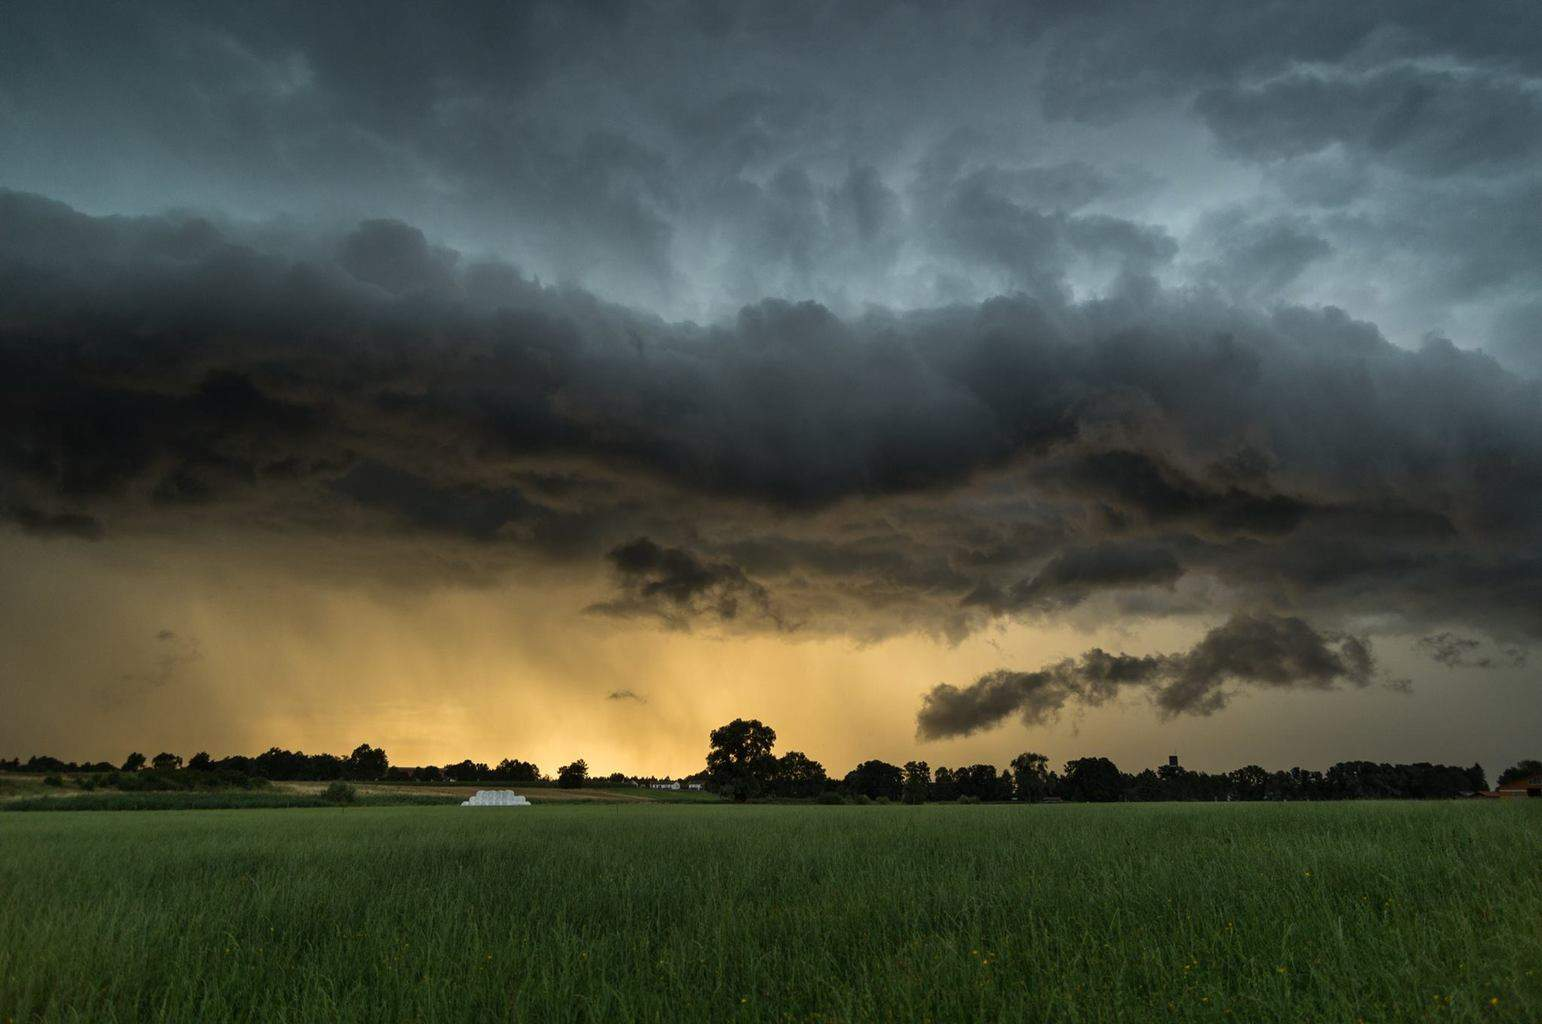 Thunderstorm with gustfront  The photo was taken in south bavaria on July 19th 2015